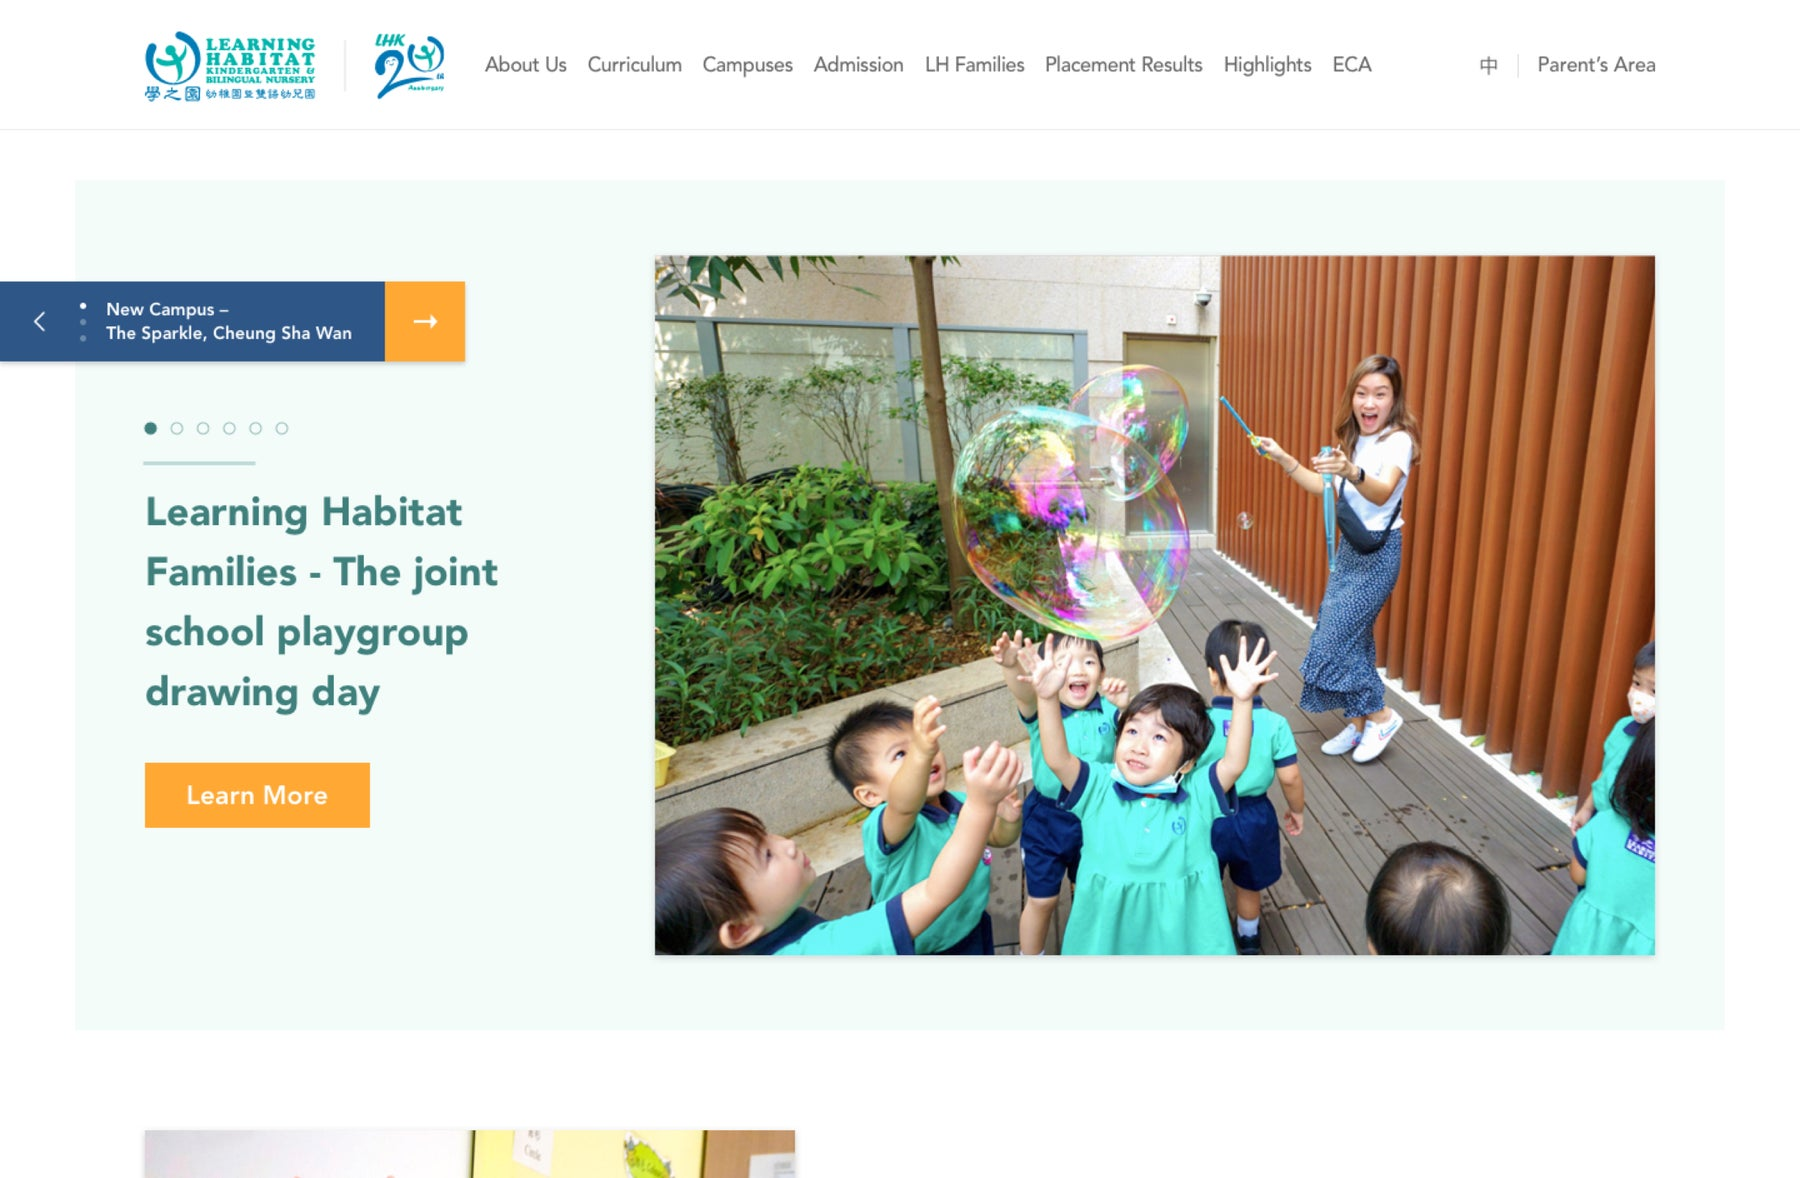 A showcase of quality early childhood education